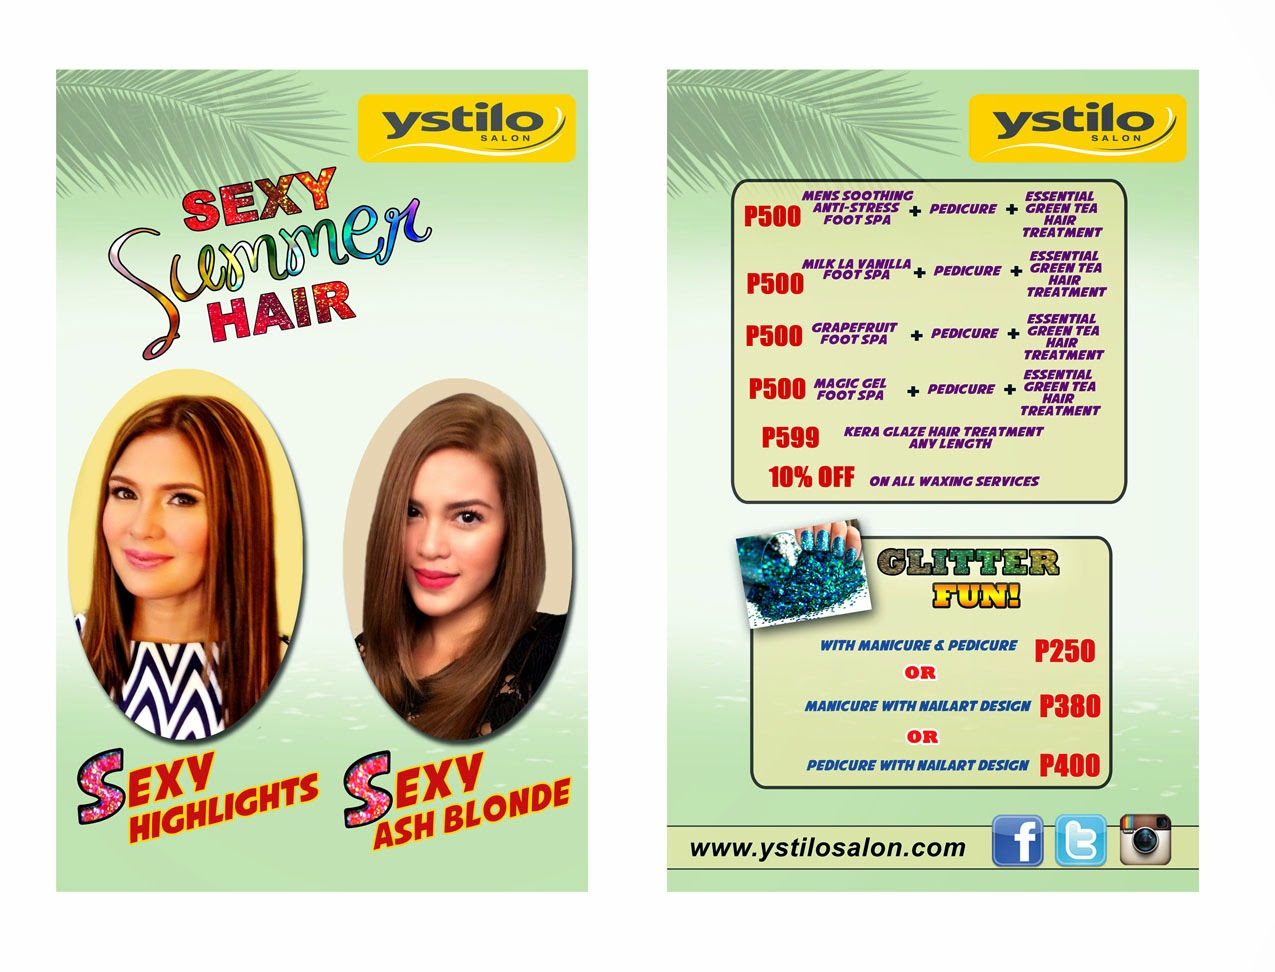 have a sexy summer hair at ystilo salon - it's me, gracee